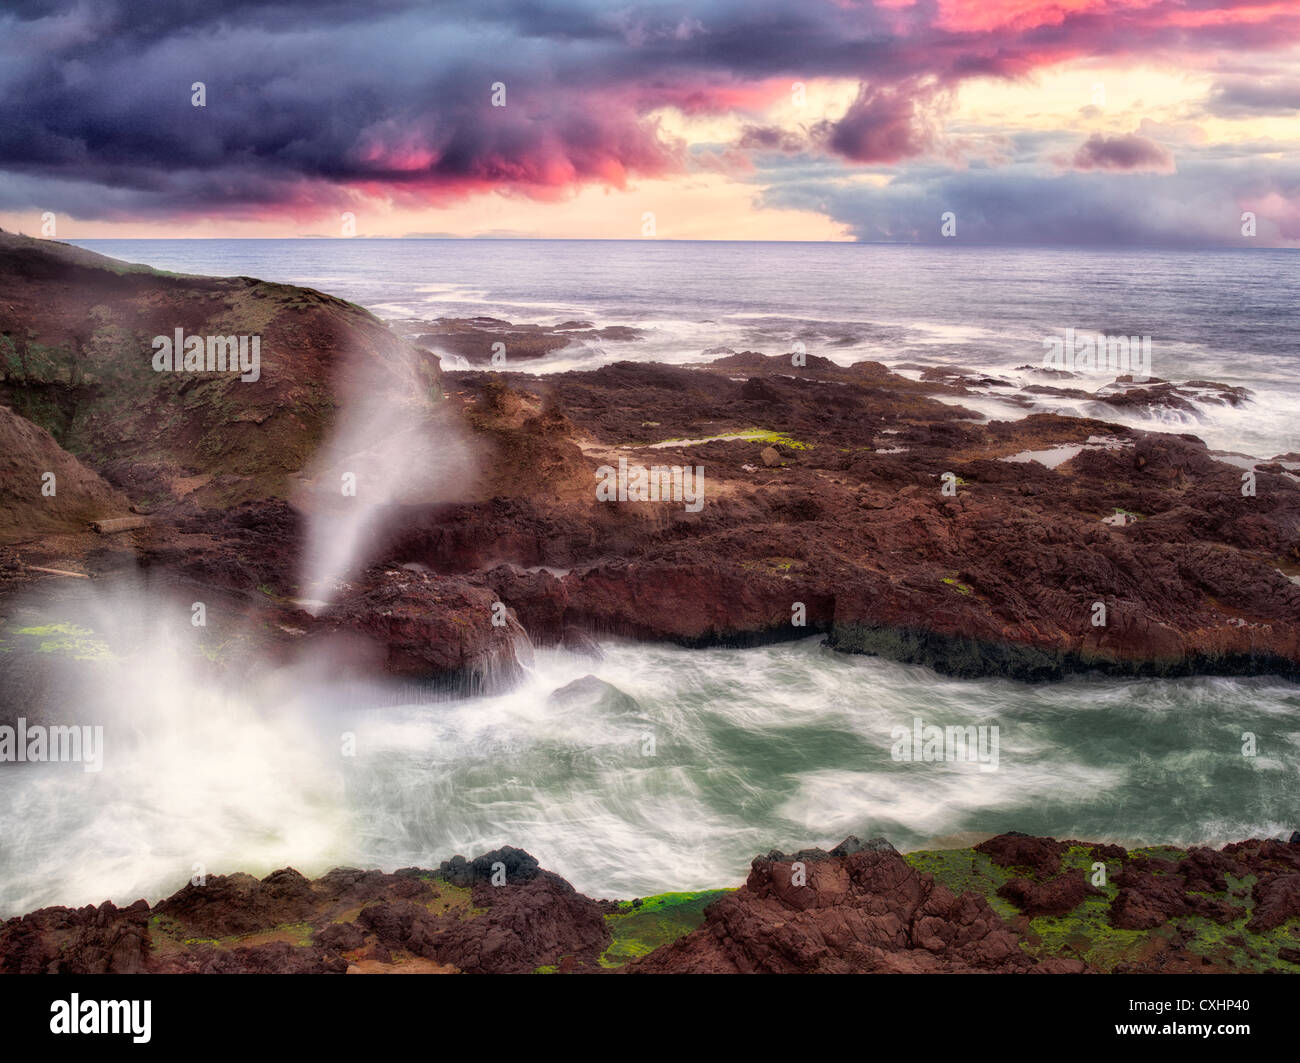 Cook's Chasam with breaking waves and sunset. Oregon - Stock Image